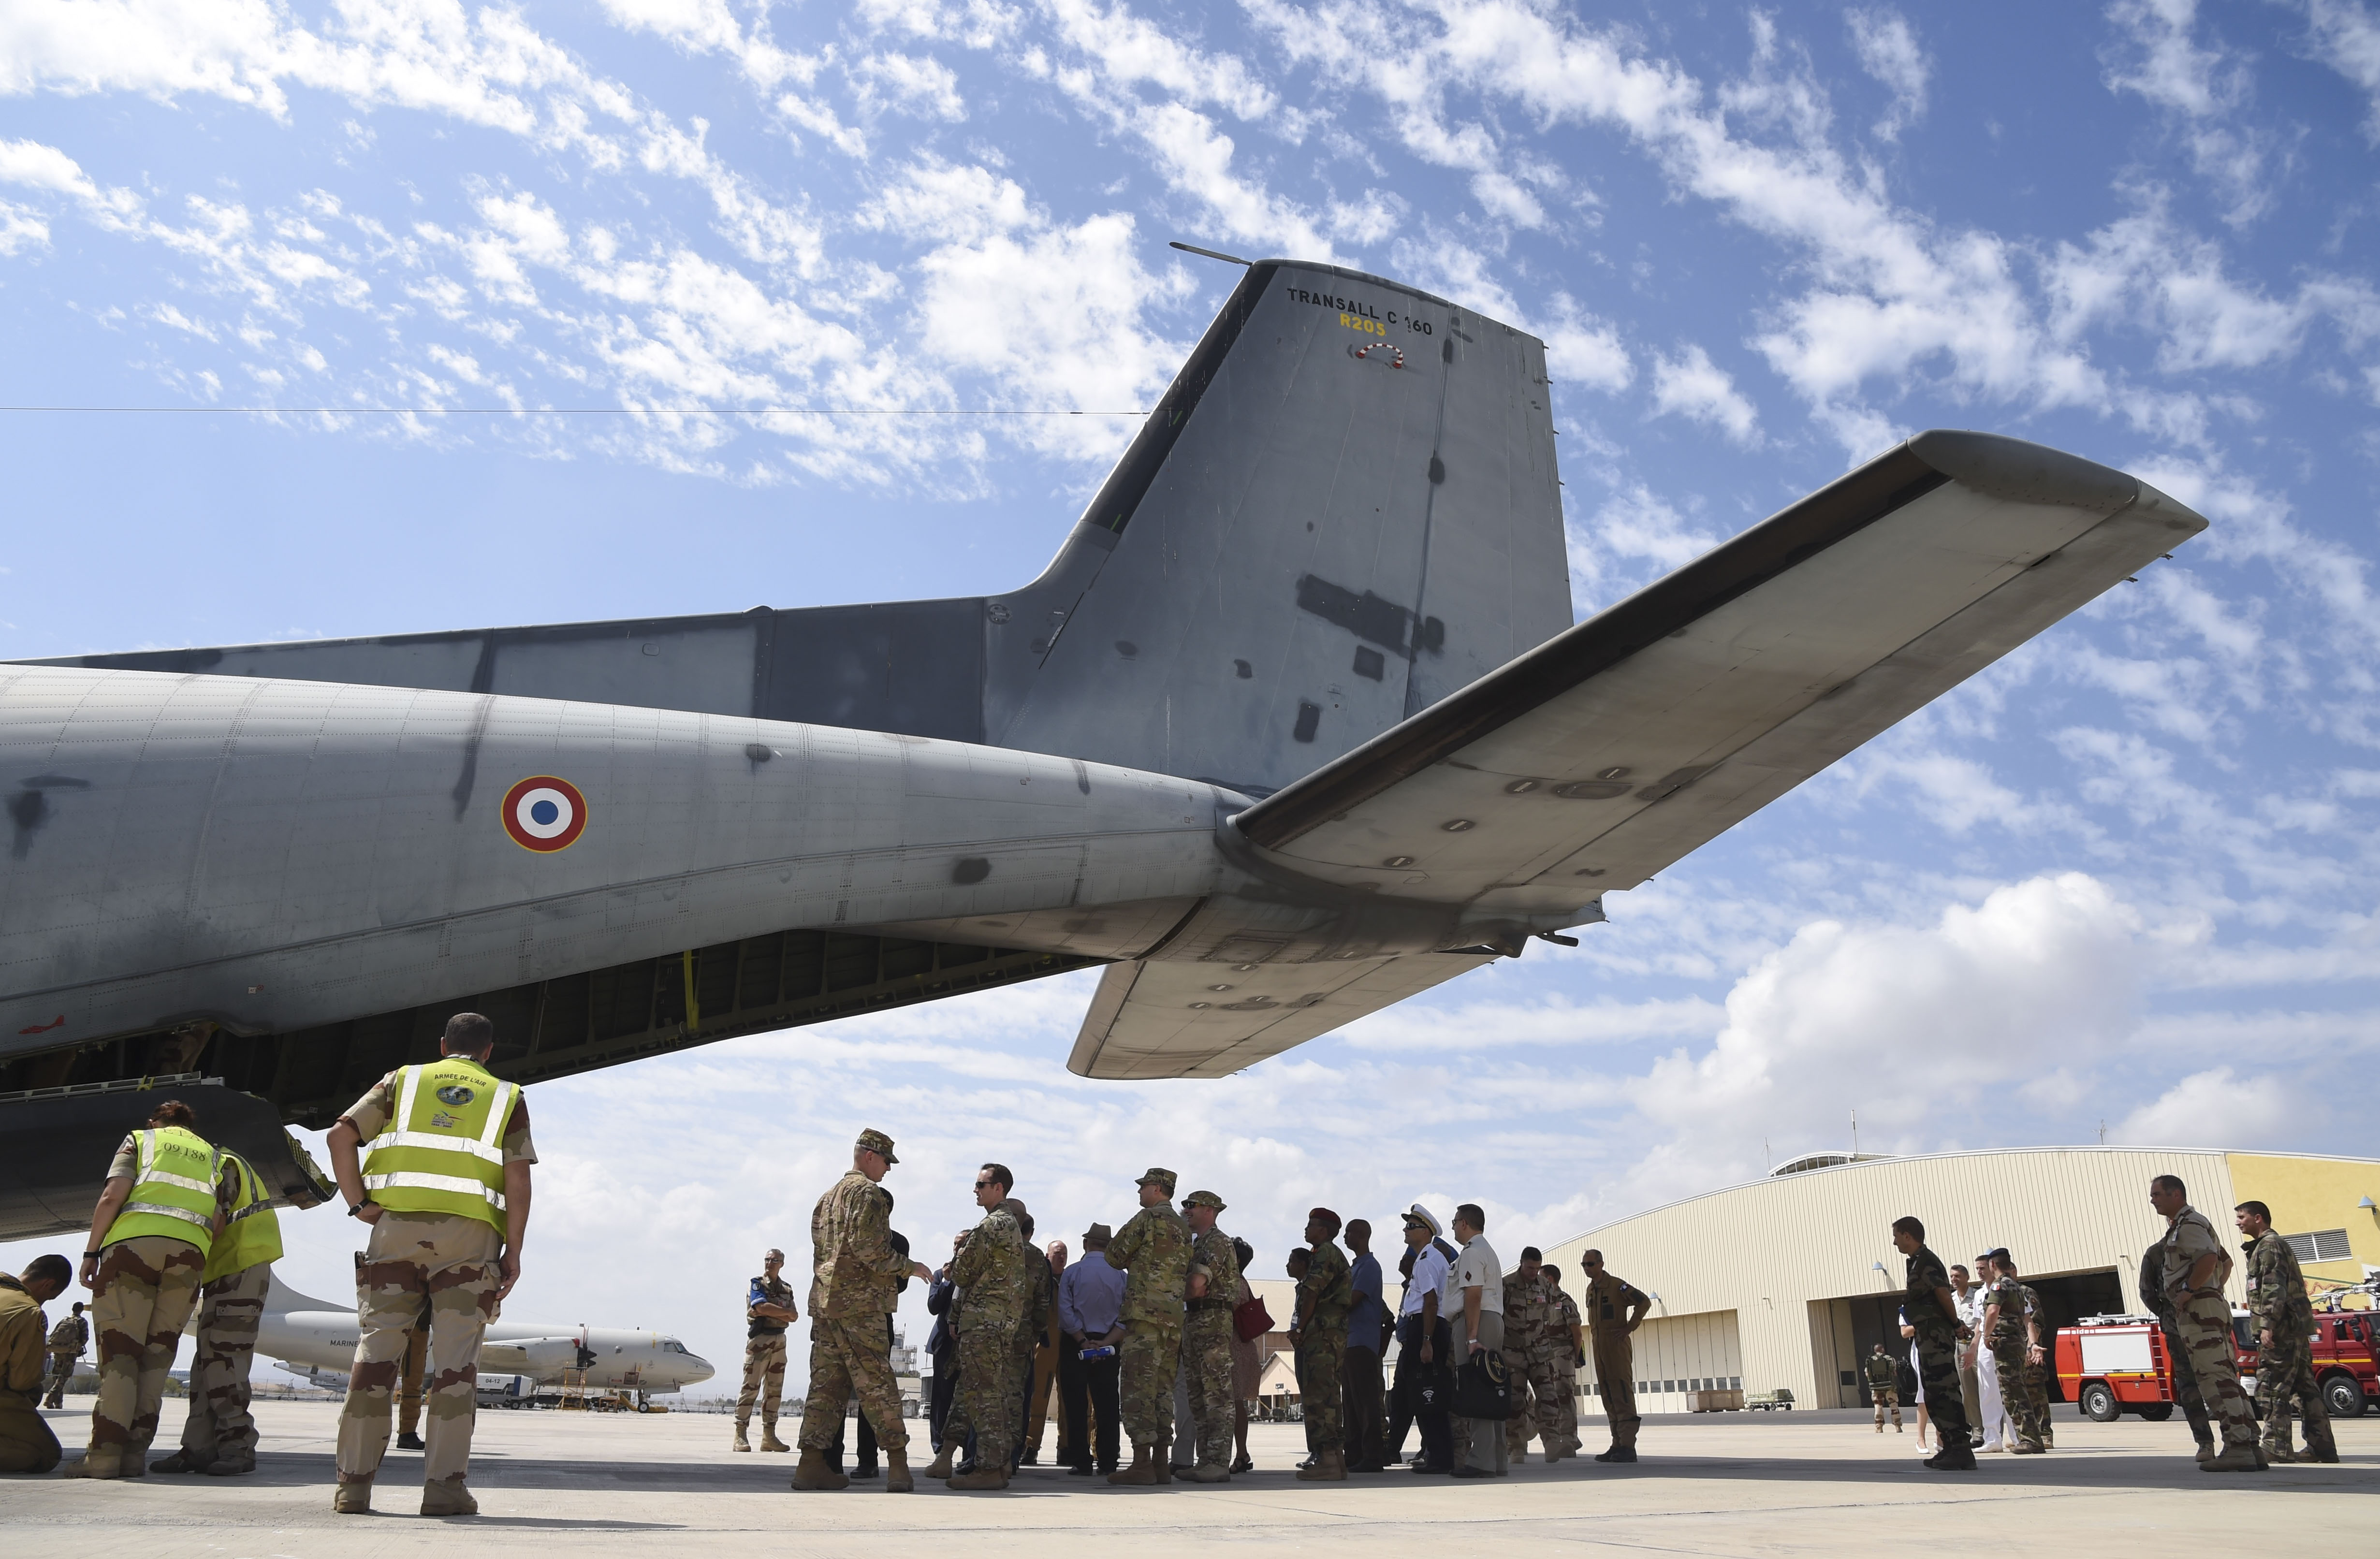 U.S. service members assigned to Combined Joint Task Force-Horn of Africa and distinguished visitors, and volunteers load onto an aircraft and observe the process during a non-combatant evacuation exercise (NEO) at the French Marine 5th Regiment, Nov. 16, 2016, in Djibouti, Djibouti. The French invited international partners to the exercise to allow them to observe and exchange information about the event. The NEO exercise gave the French and their guests the opportunity to practice an evacuation with international partners. (U.S. Air National Guard photo by Staff Sgt. Penny Snoozy)